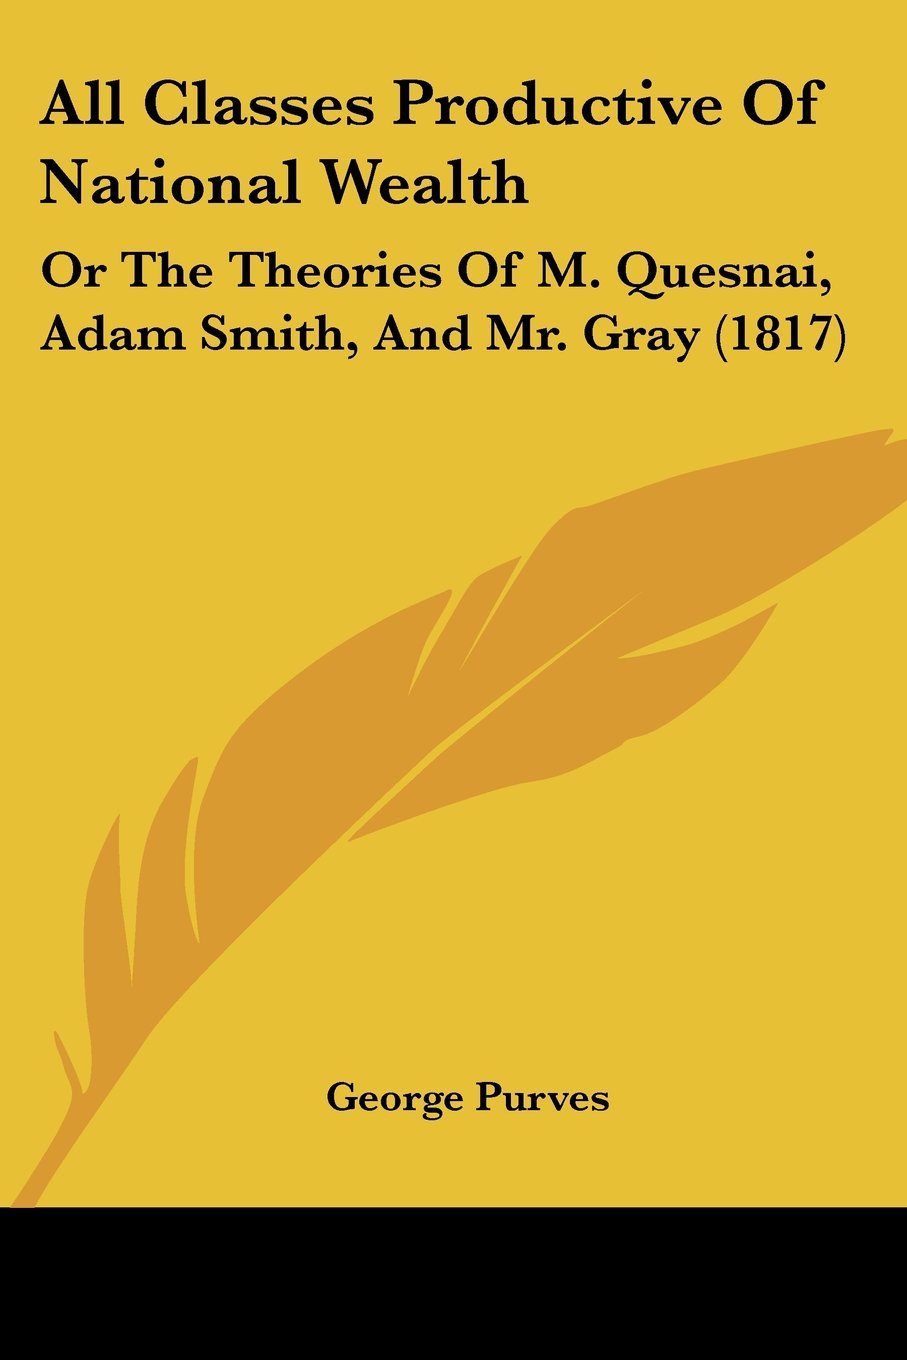 Download All Classes Productive Of National Wealth: Or The Theories Of M. Quesnai, Adam Smith, And Mr. Gray (1817) PDF